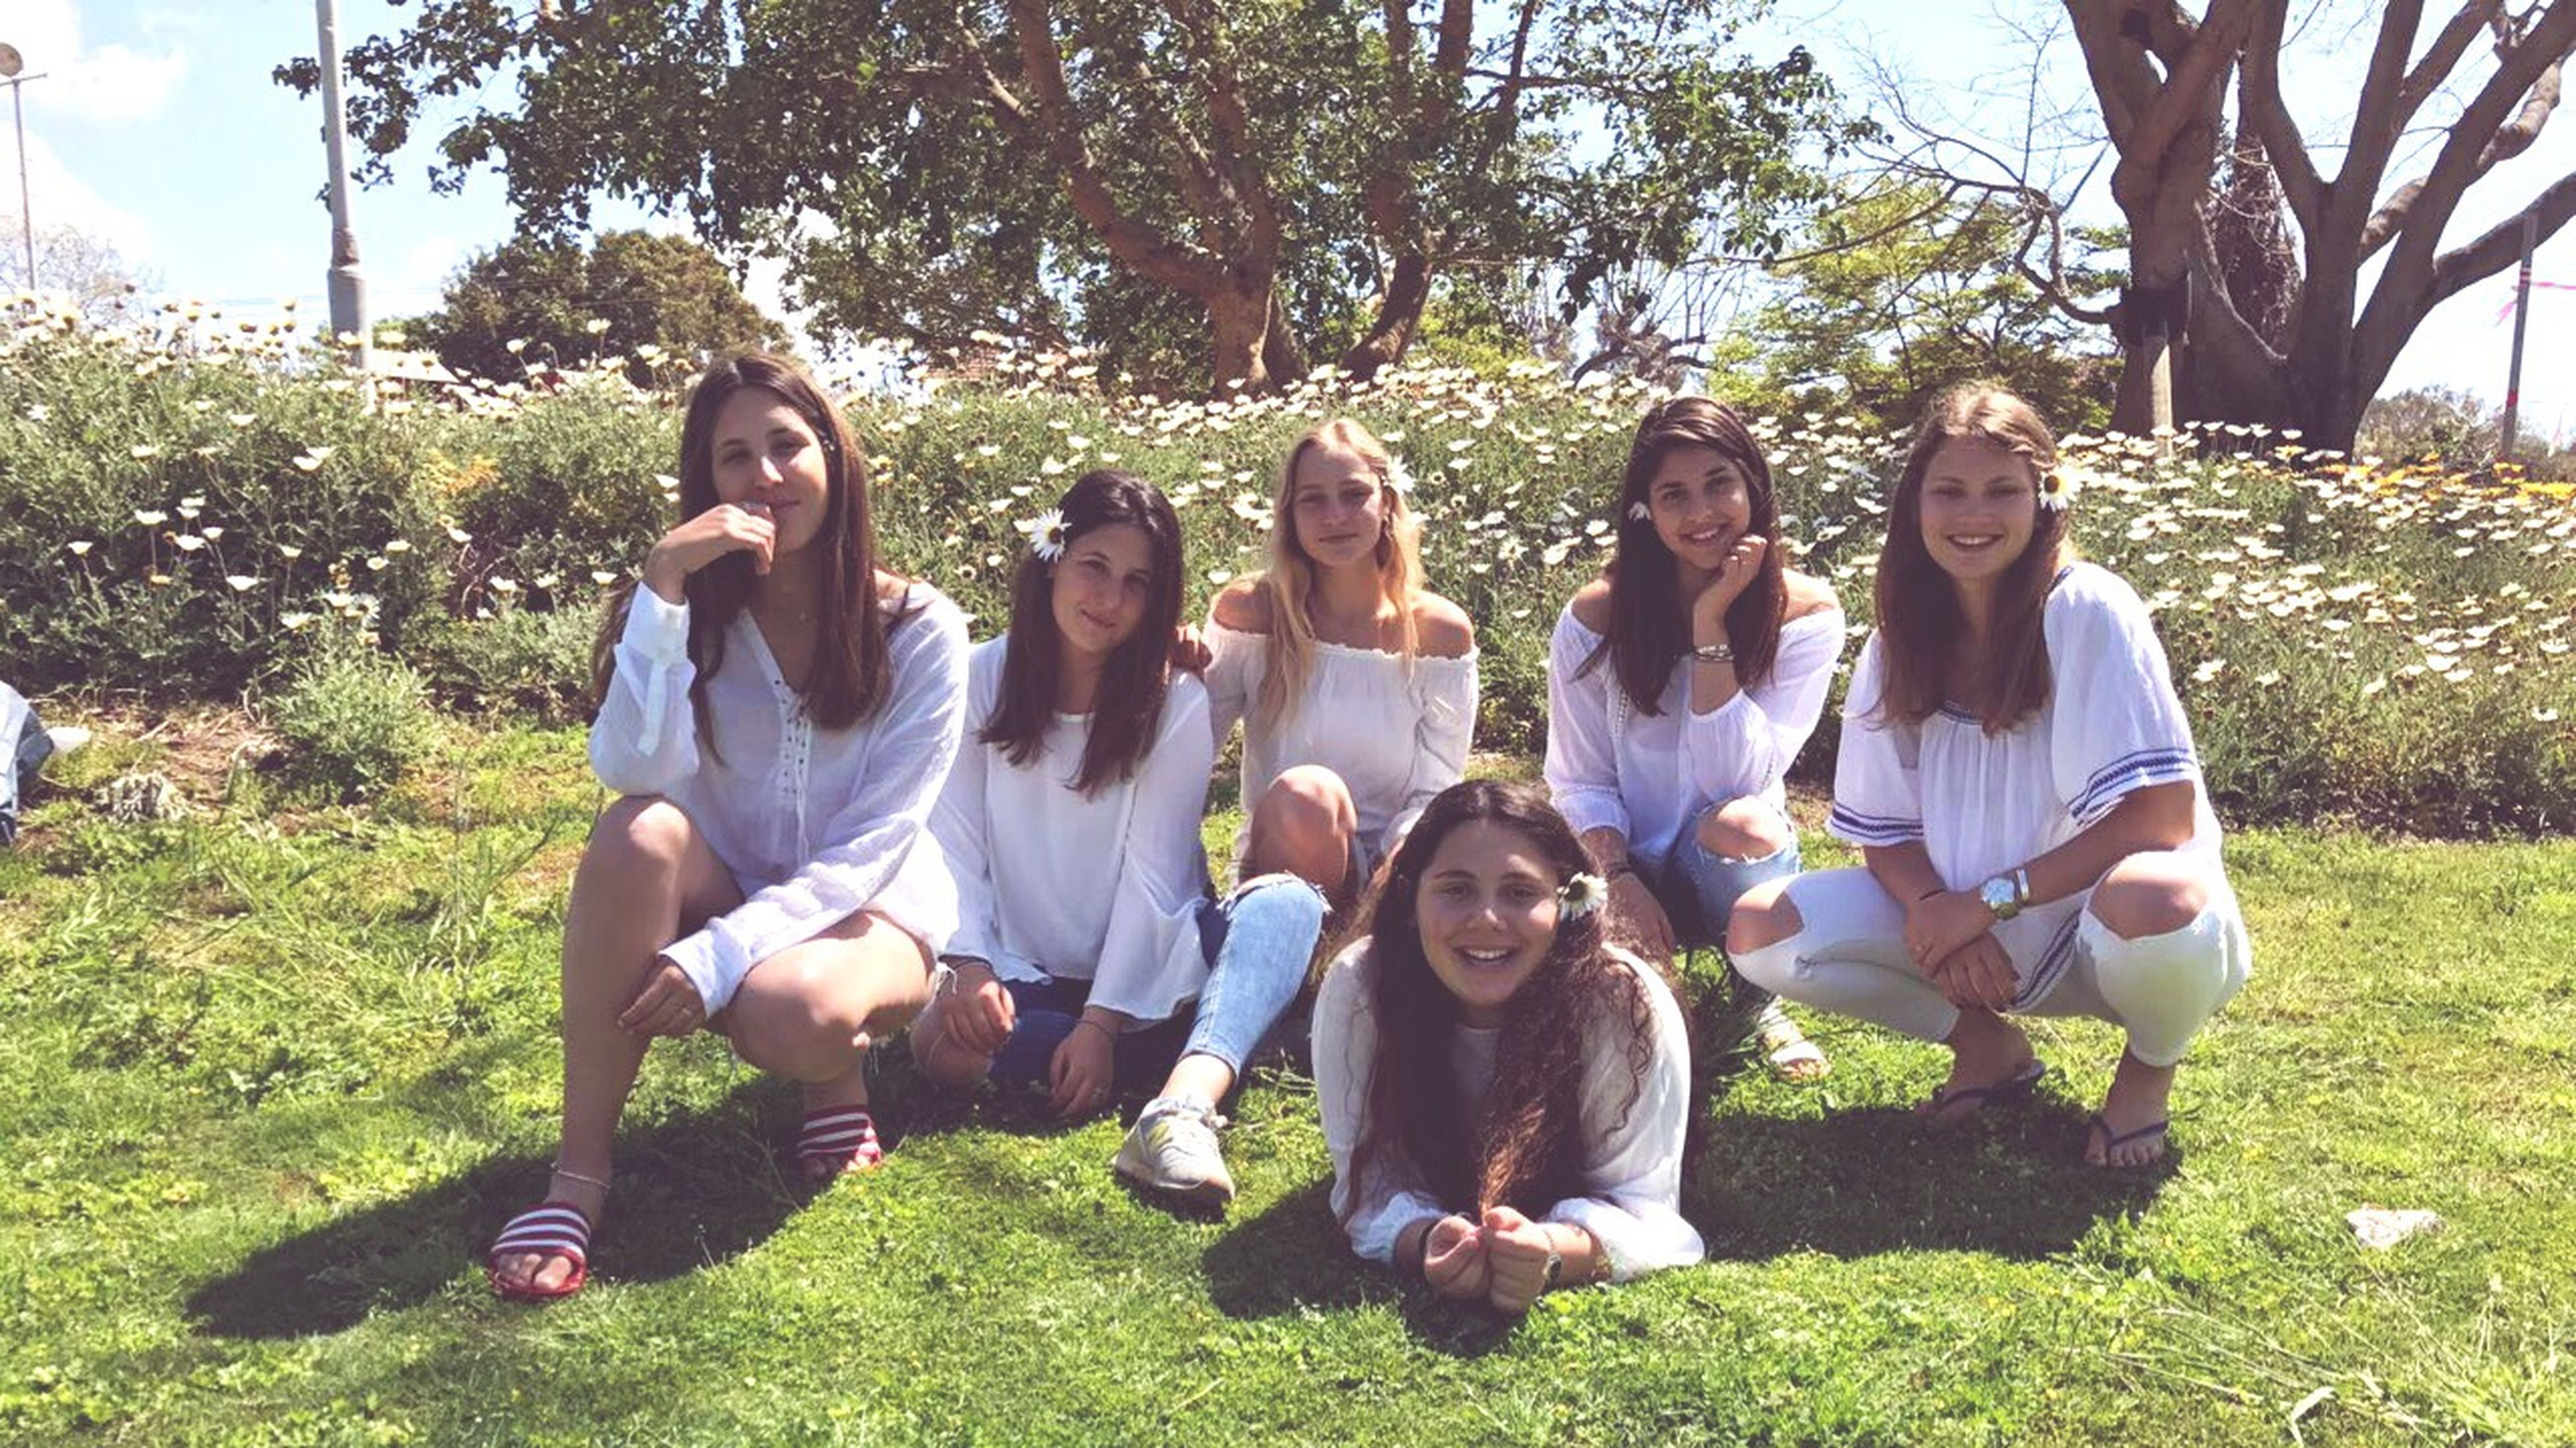 friendship, casual clothing, togetherness, relaxation, happiness, mature adult, fun, young adult, young women, sitting, tree, enjoyment, smiling, summer, looking at camera, portrait, full length, bonding, leisure activity, people, grass, lifestyles, guitar, adult, mature women, outdoors, plucking an instrument, pets, dog, real people, playing, cheerful, nature, day, adults only